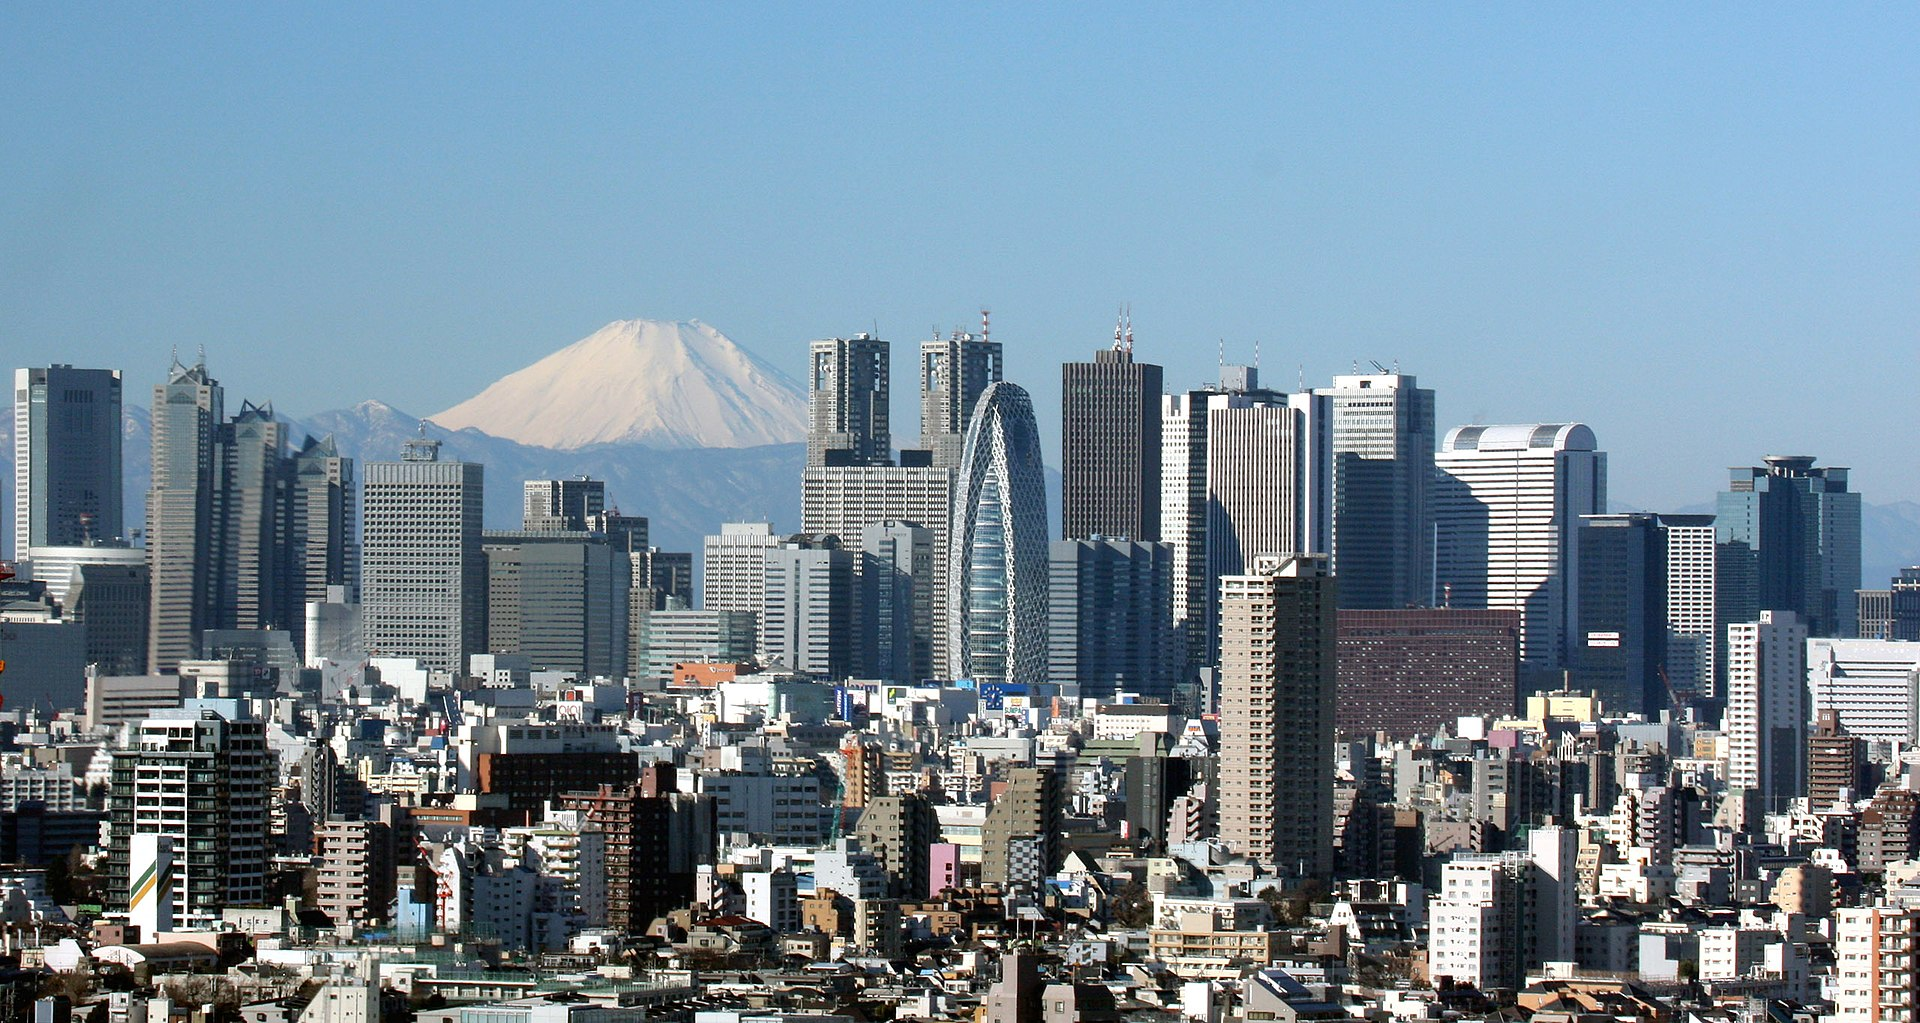 Skyscrapers of Shinjuku with Mt Fuji in the background